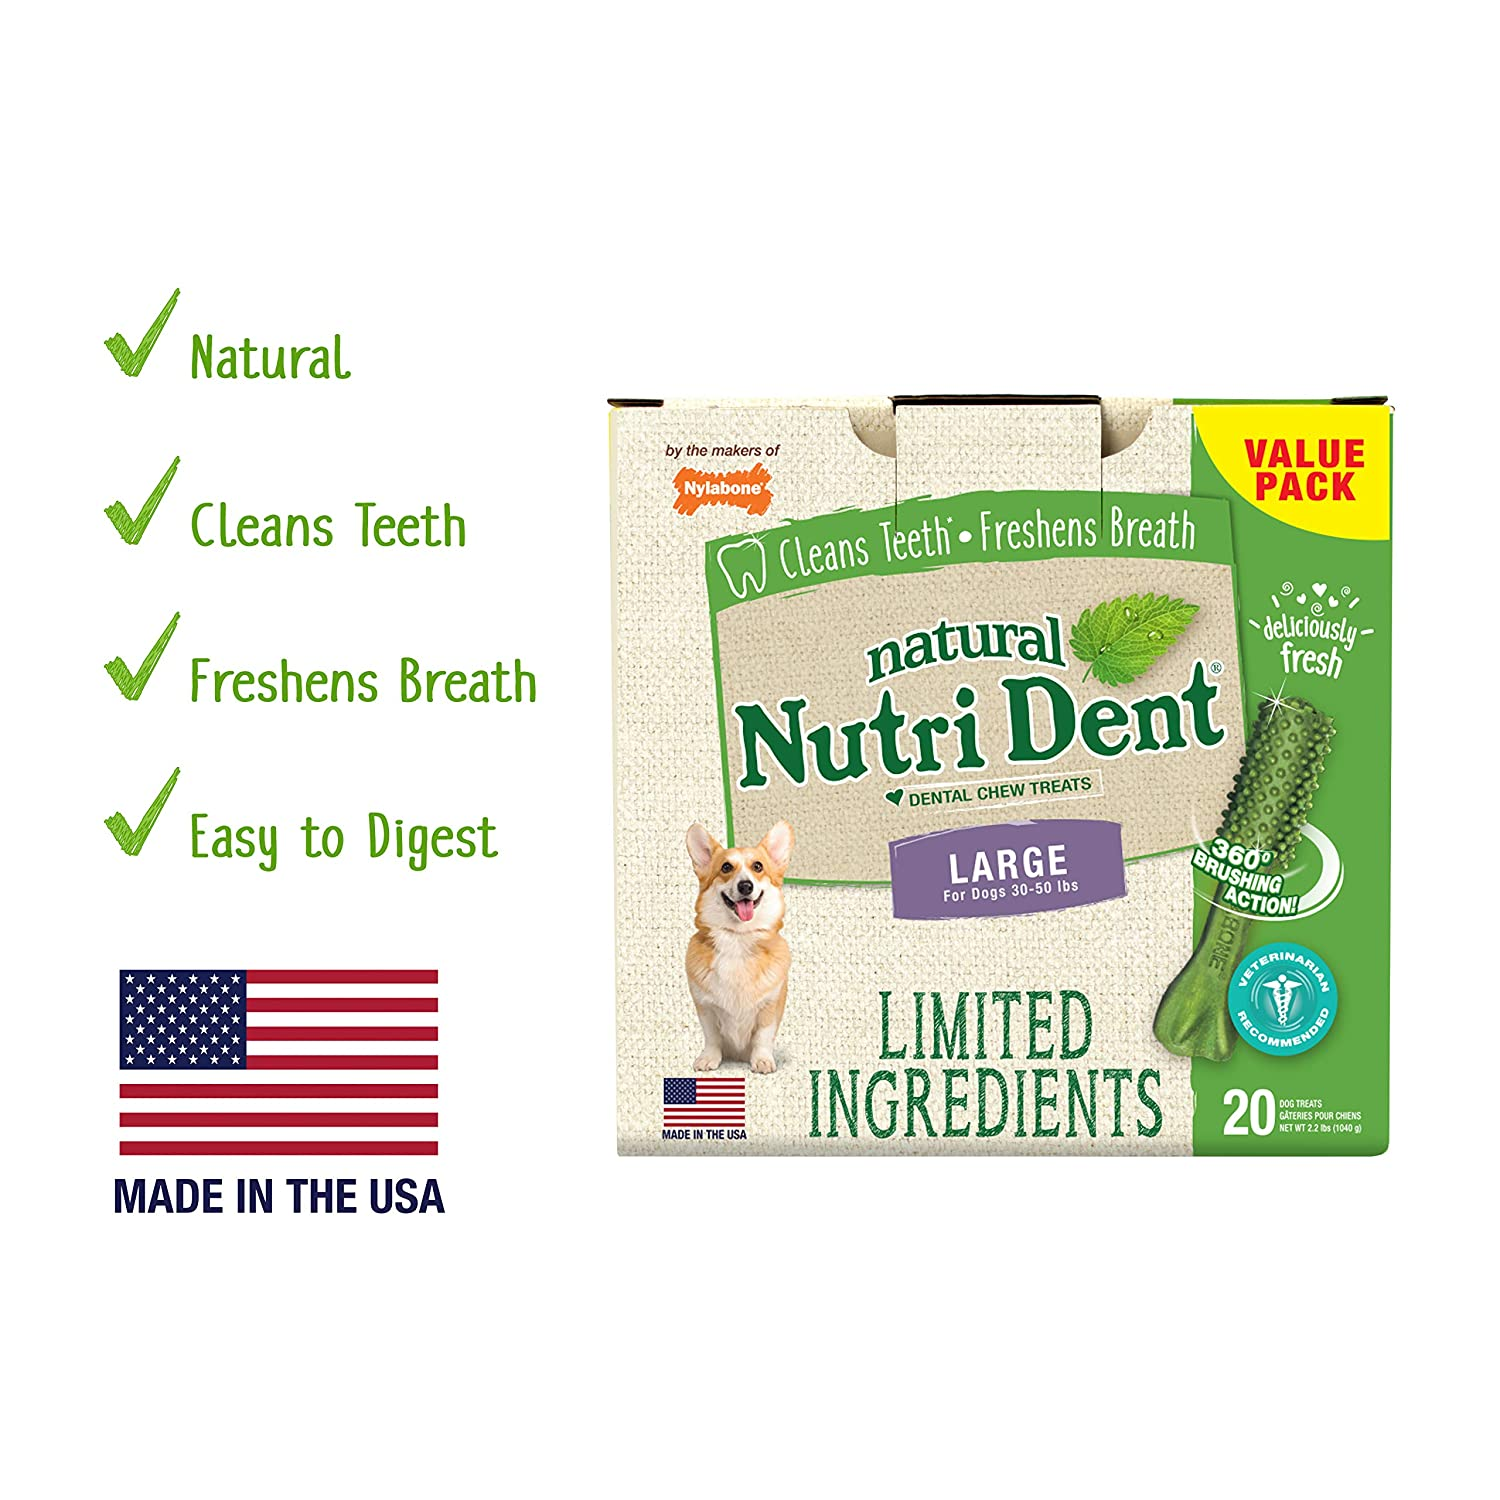 20 Ct Nutri Dent Limited Ingredient Dental Dog Chews   Large Size   Filet Mignon Or Fresh Breath Flavors